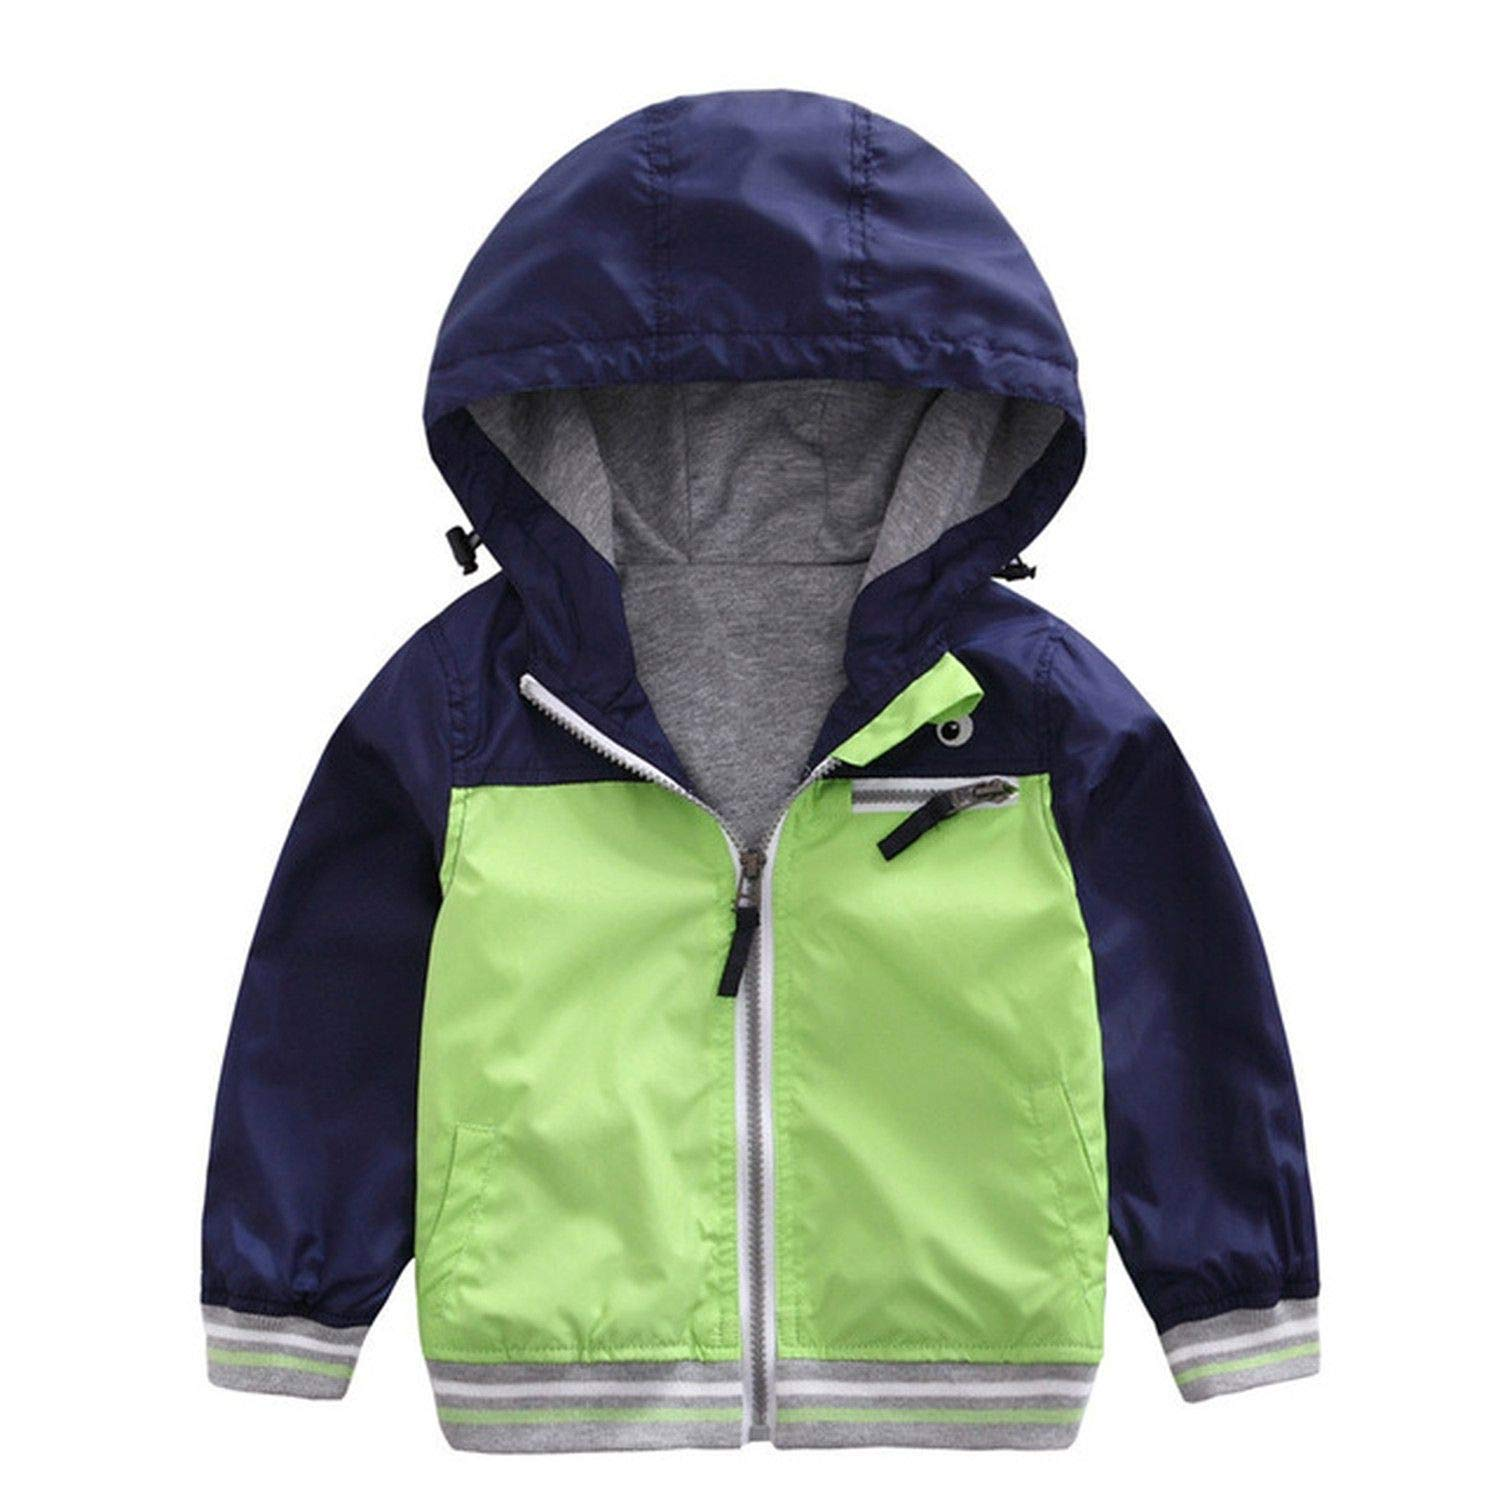 96ee62dc0 Amazon.com: Kids Toddler Boy Jacket Coat Spring Autumn Hooded Windbreaker  Outfits Children Outerwear Baby Blazer: Clothing